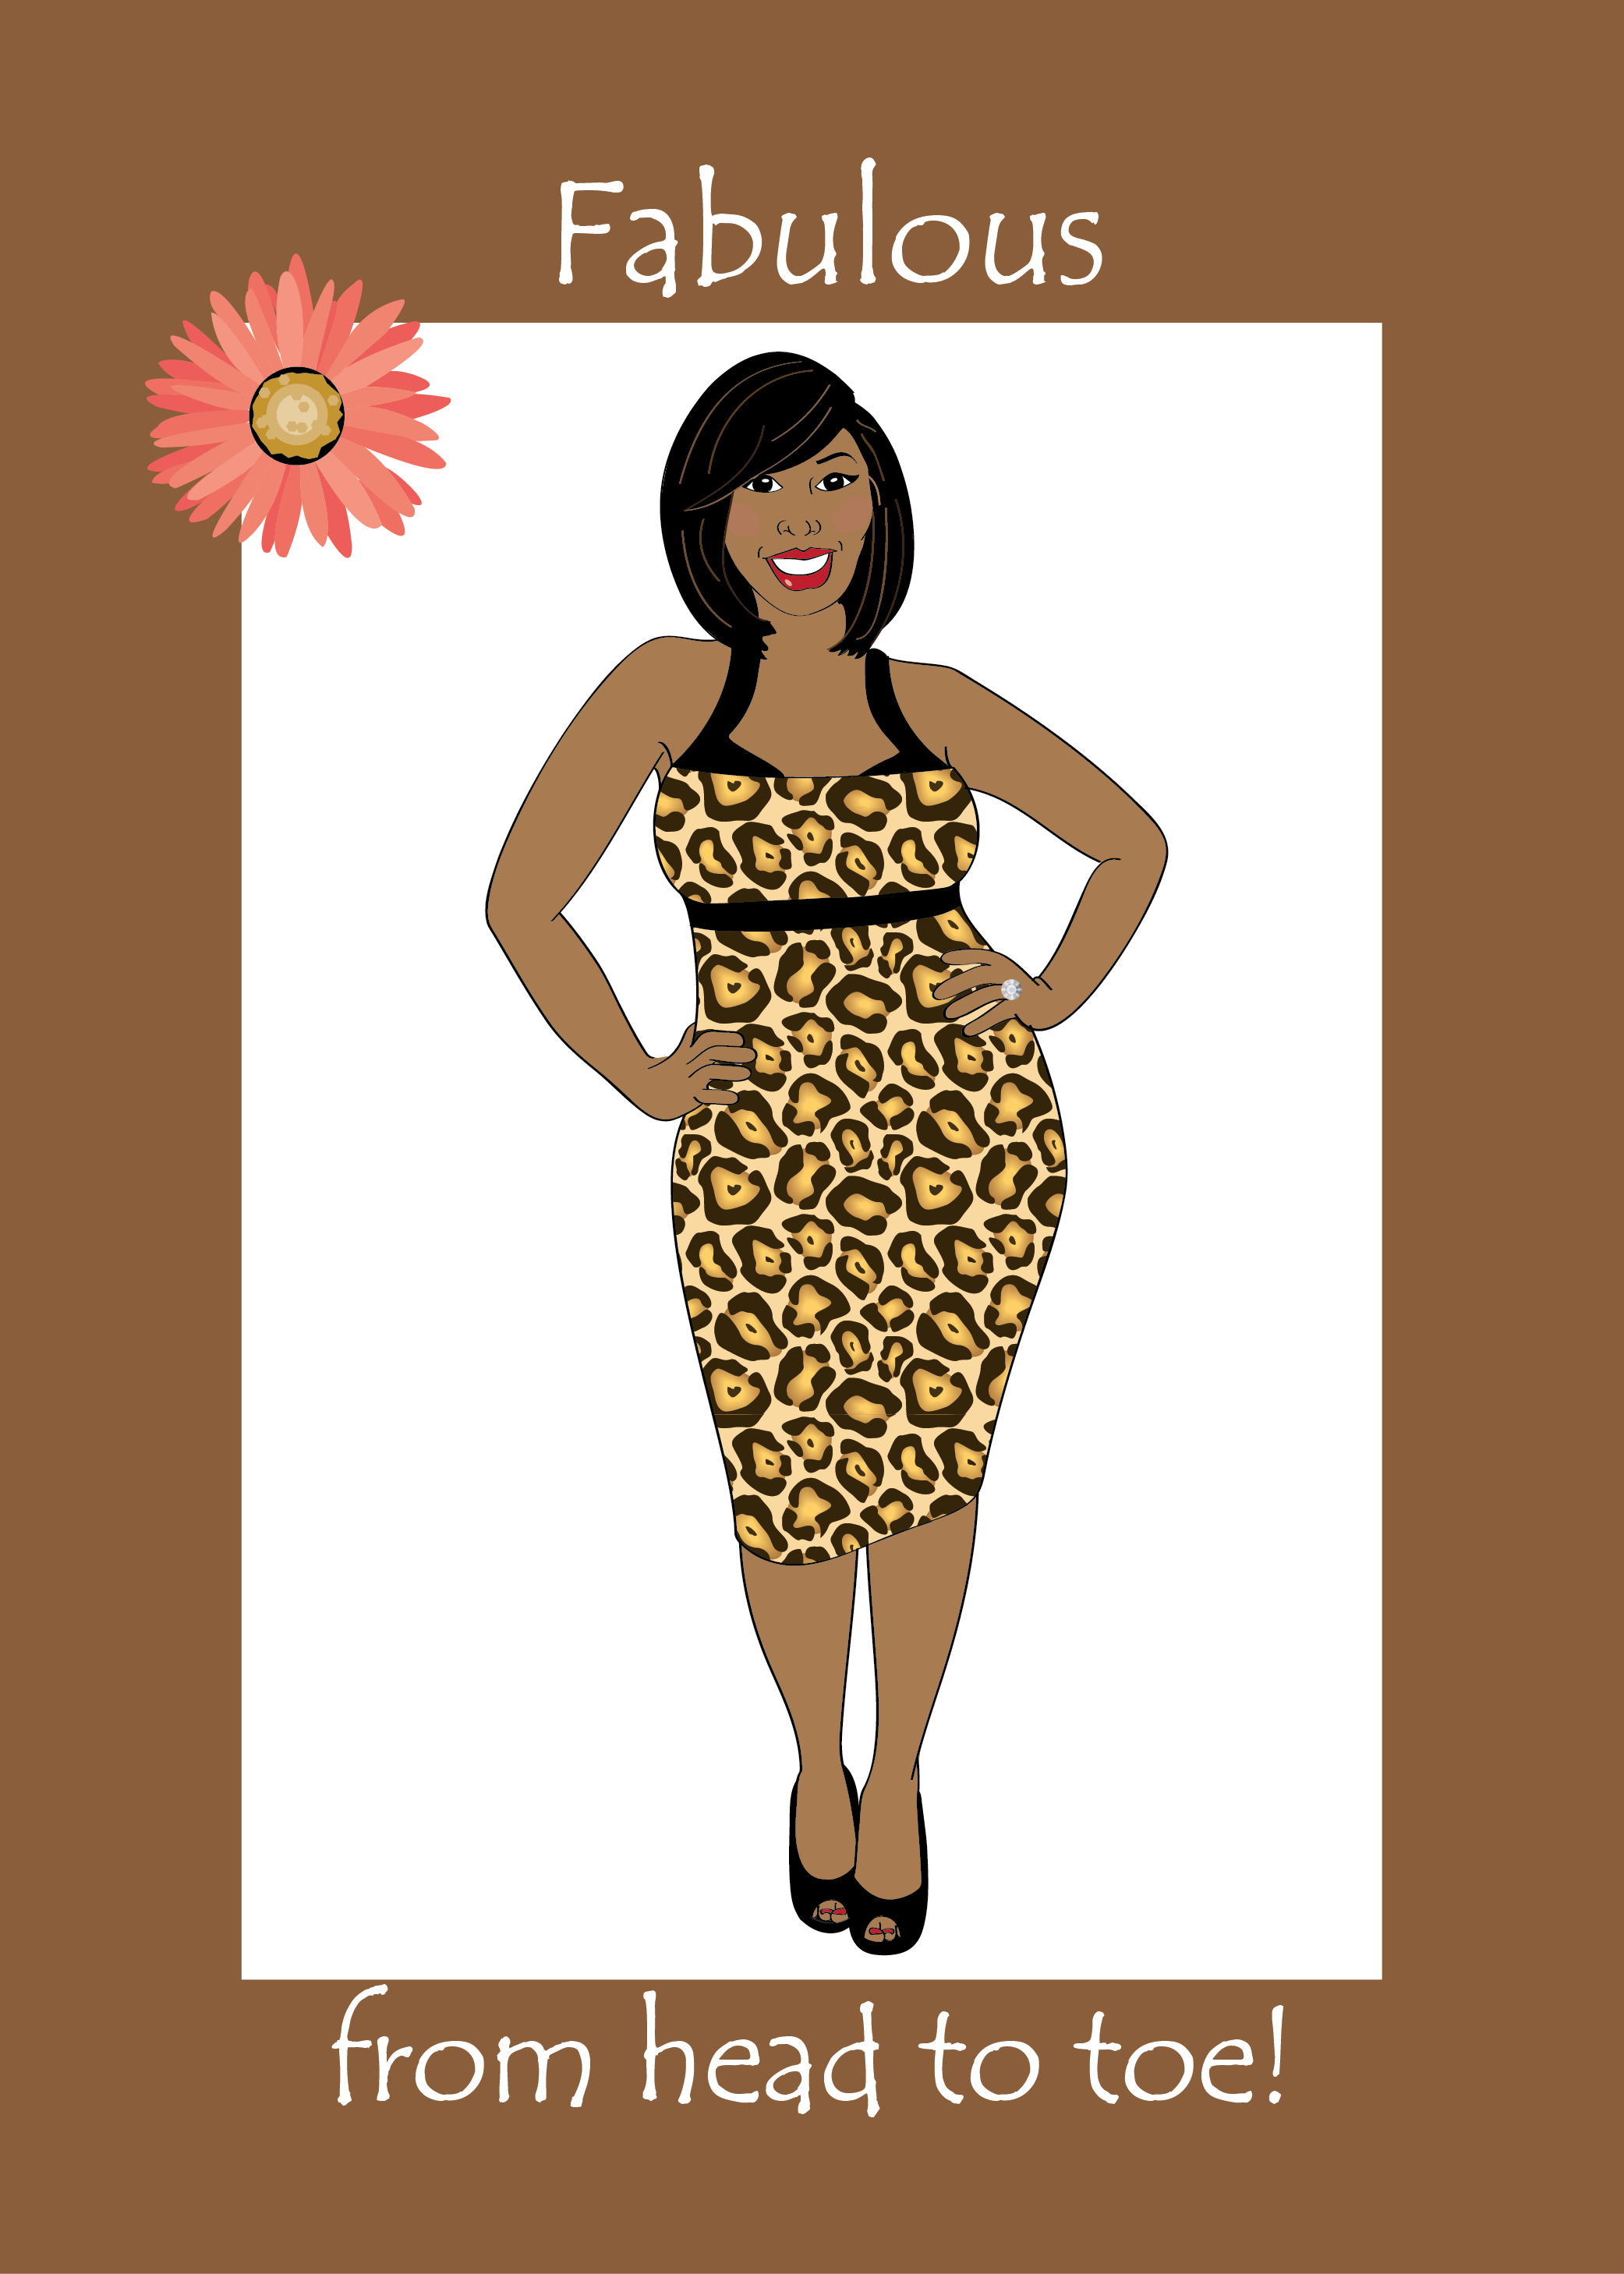 Happy Birthday Fabulous from head to toe card – Leopard Print Birthday Card